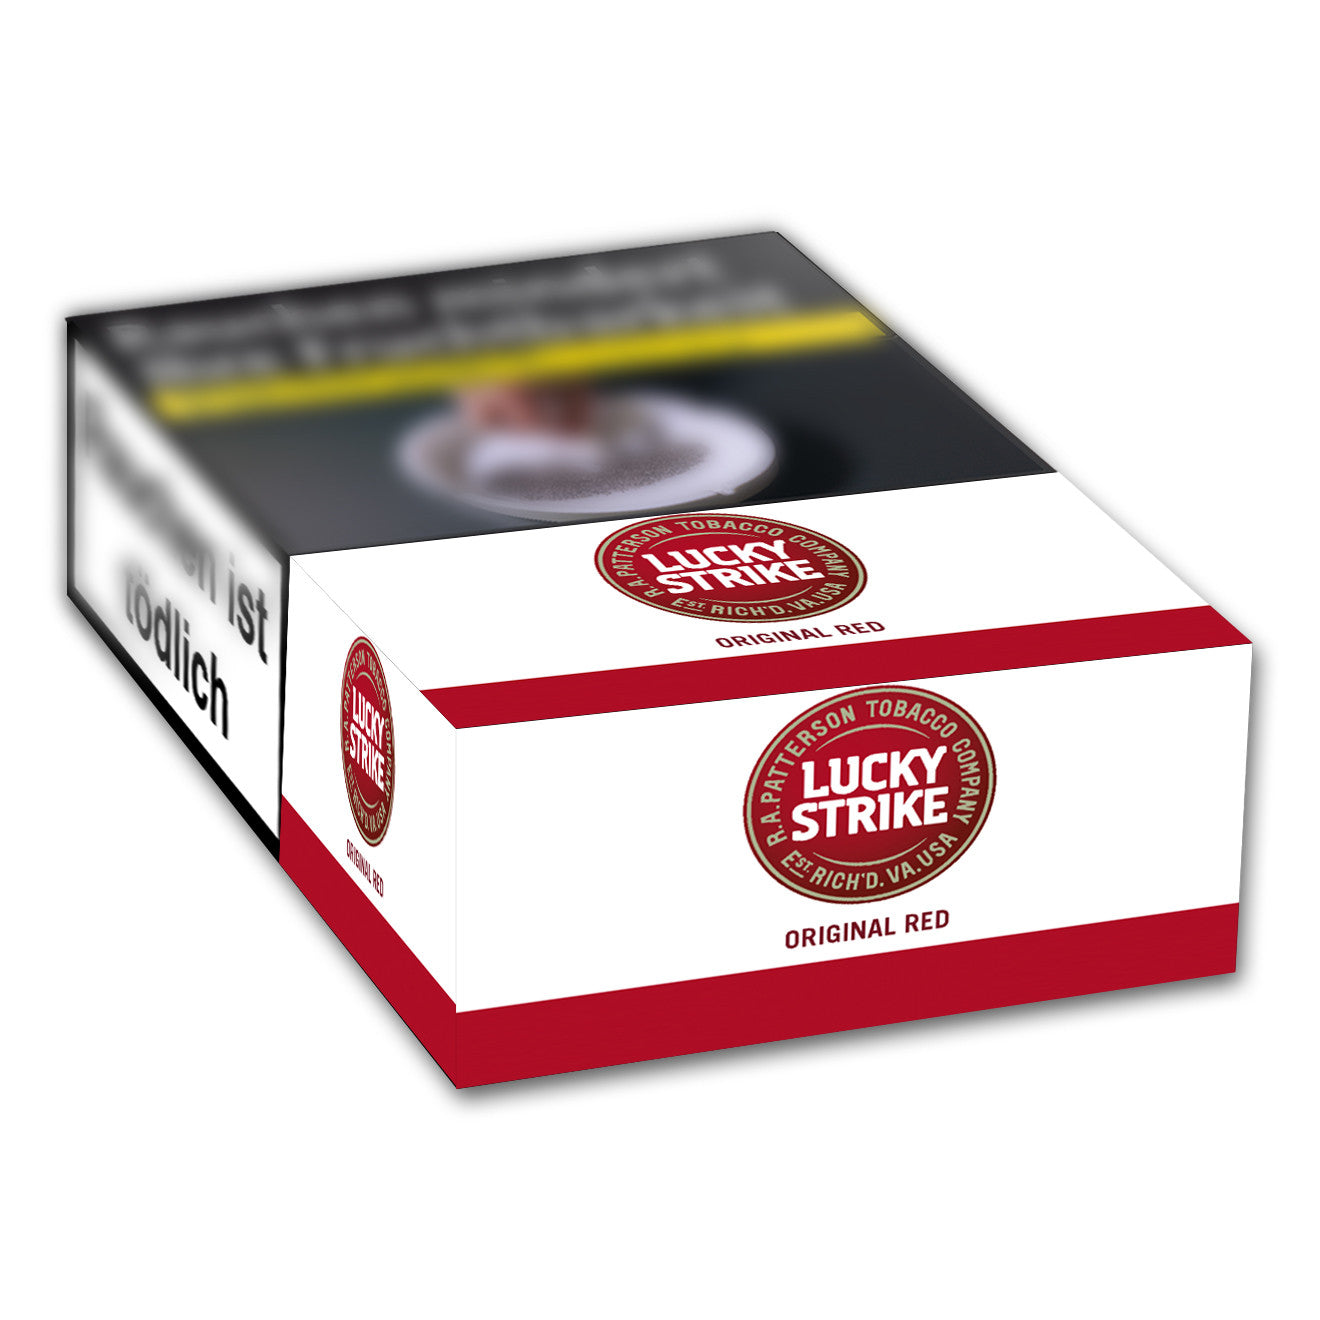 LUCKY STRIKE Original Red Automatenpackung 7,00 Eur (20x21)